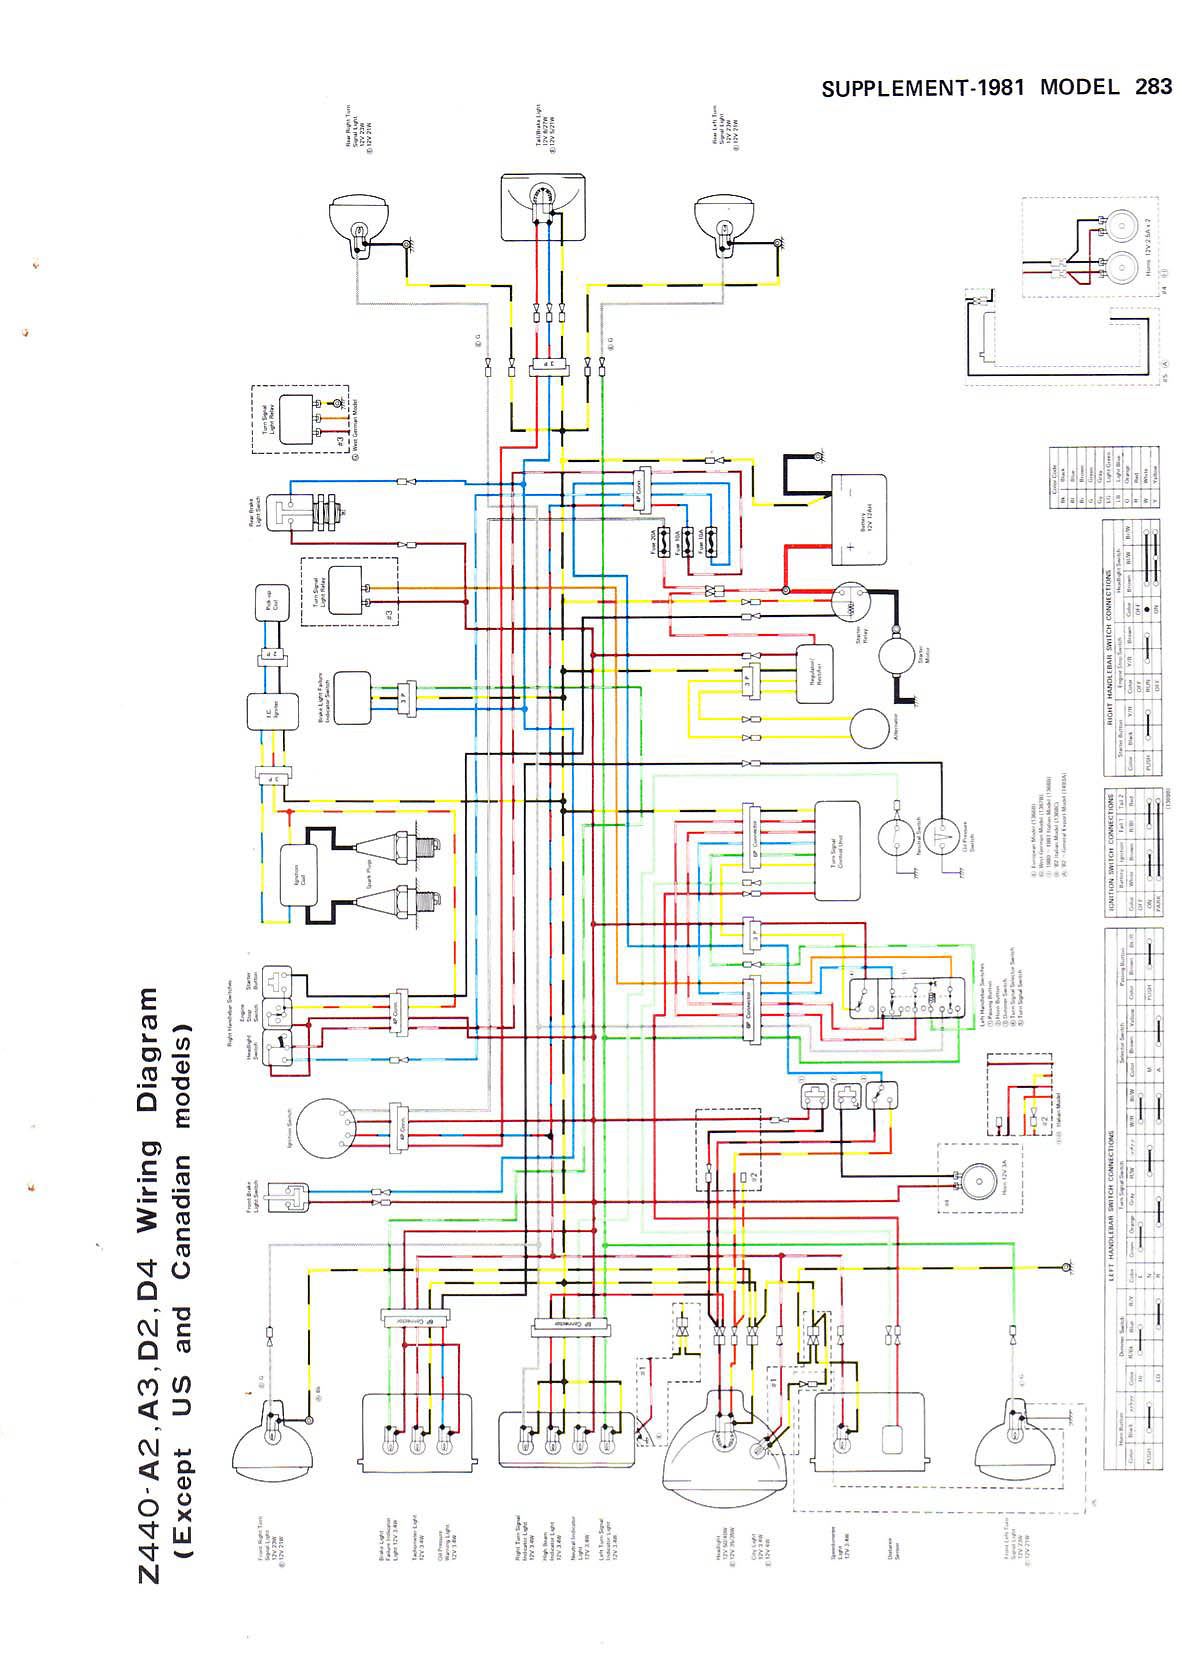 Kawasaki KZ 440 %2780 a %2782 Service Manual_Page_280 kz400 wiring diagram 1983 kawasaki motorcycle wiring diagrams  at bakdesigns.co